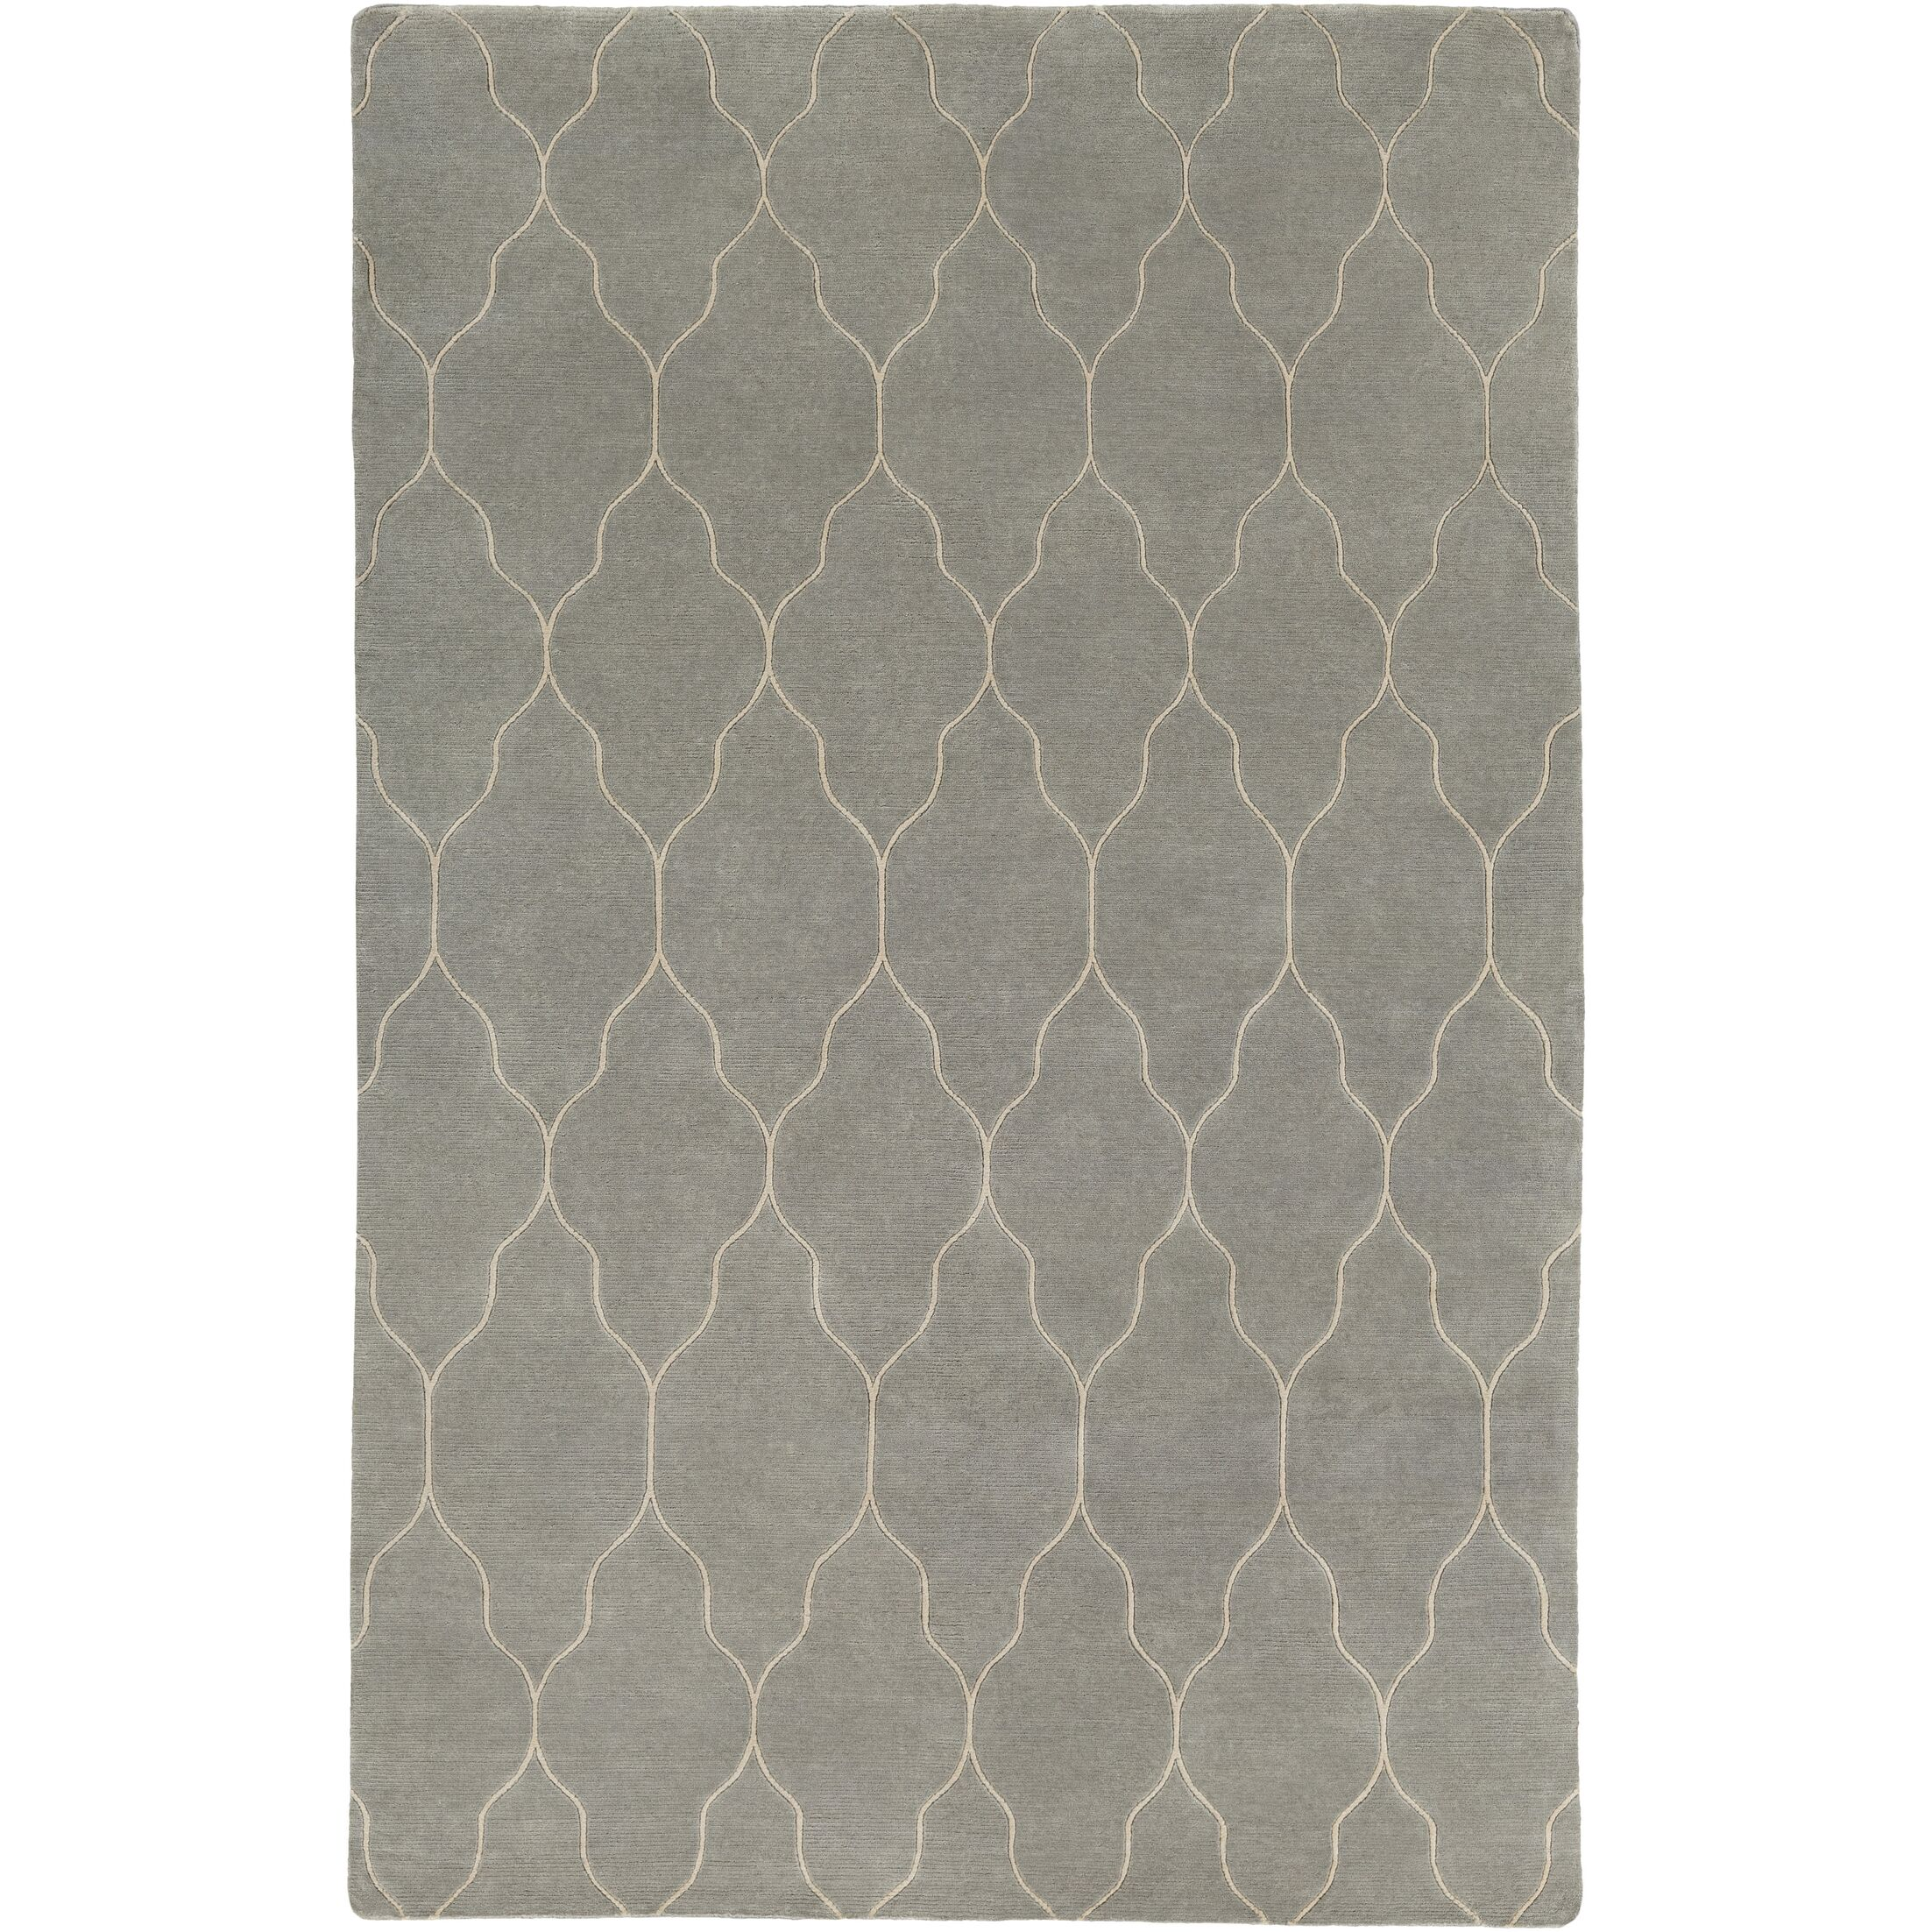 Moreton Hand-Knotted Neutral Area Rug Rug Size: Rectangle 9' x 13'